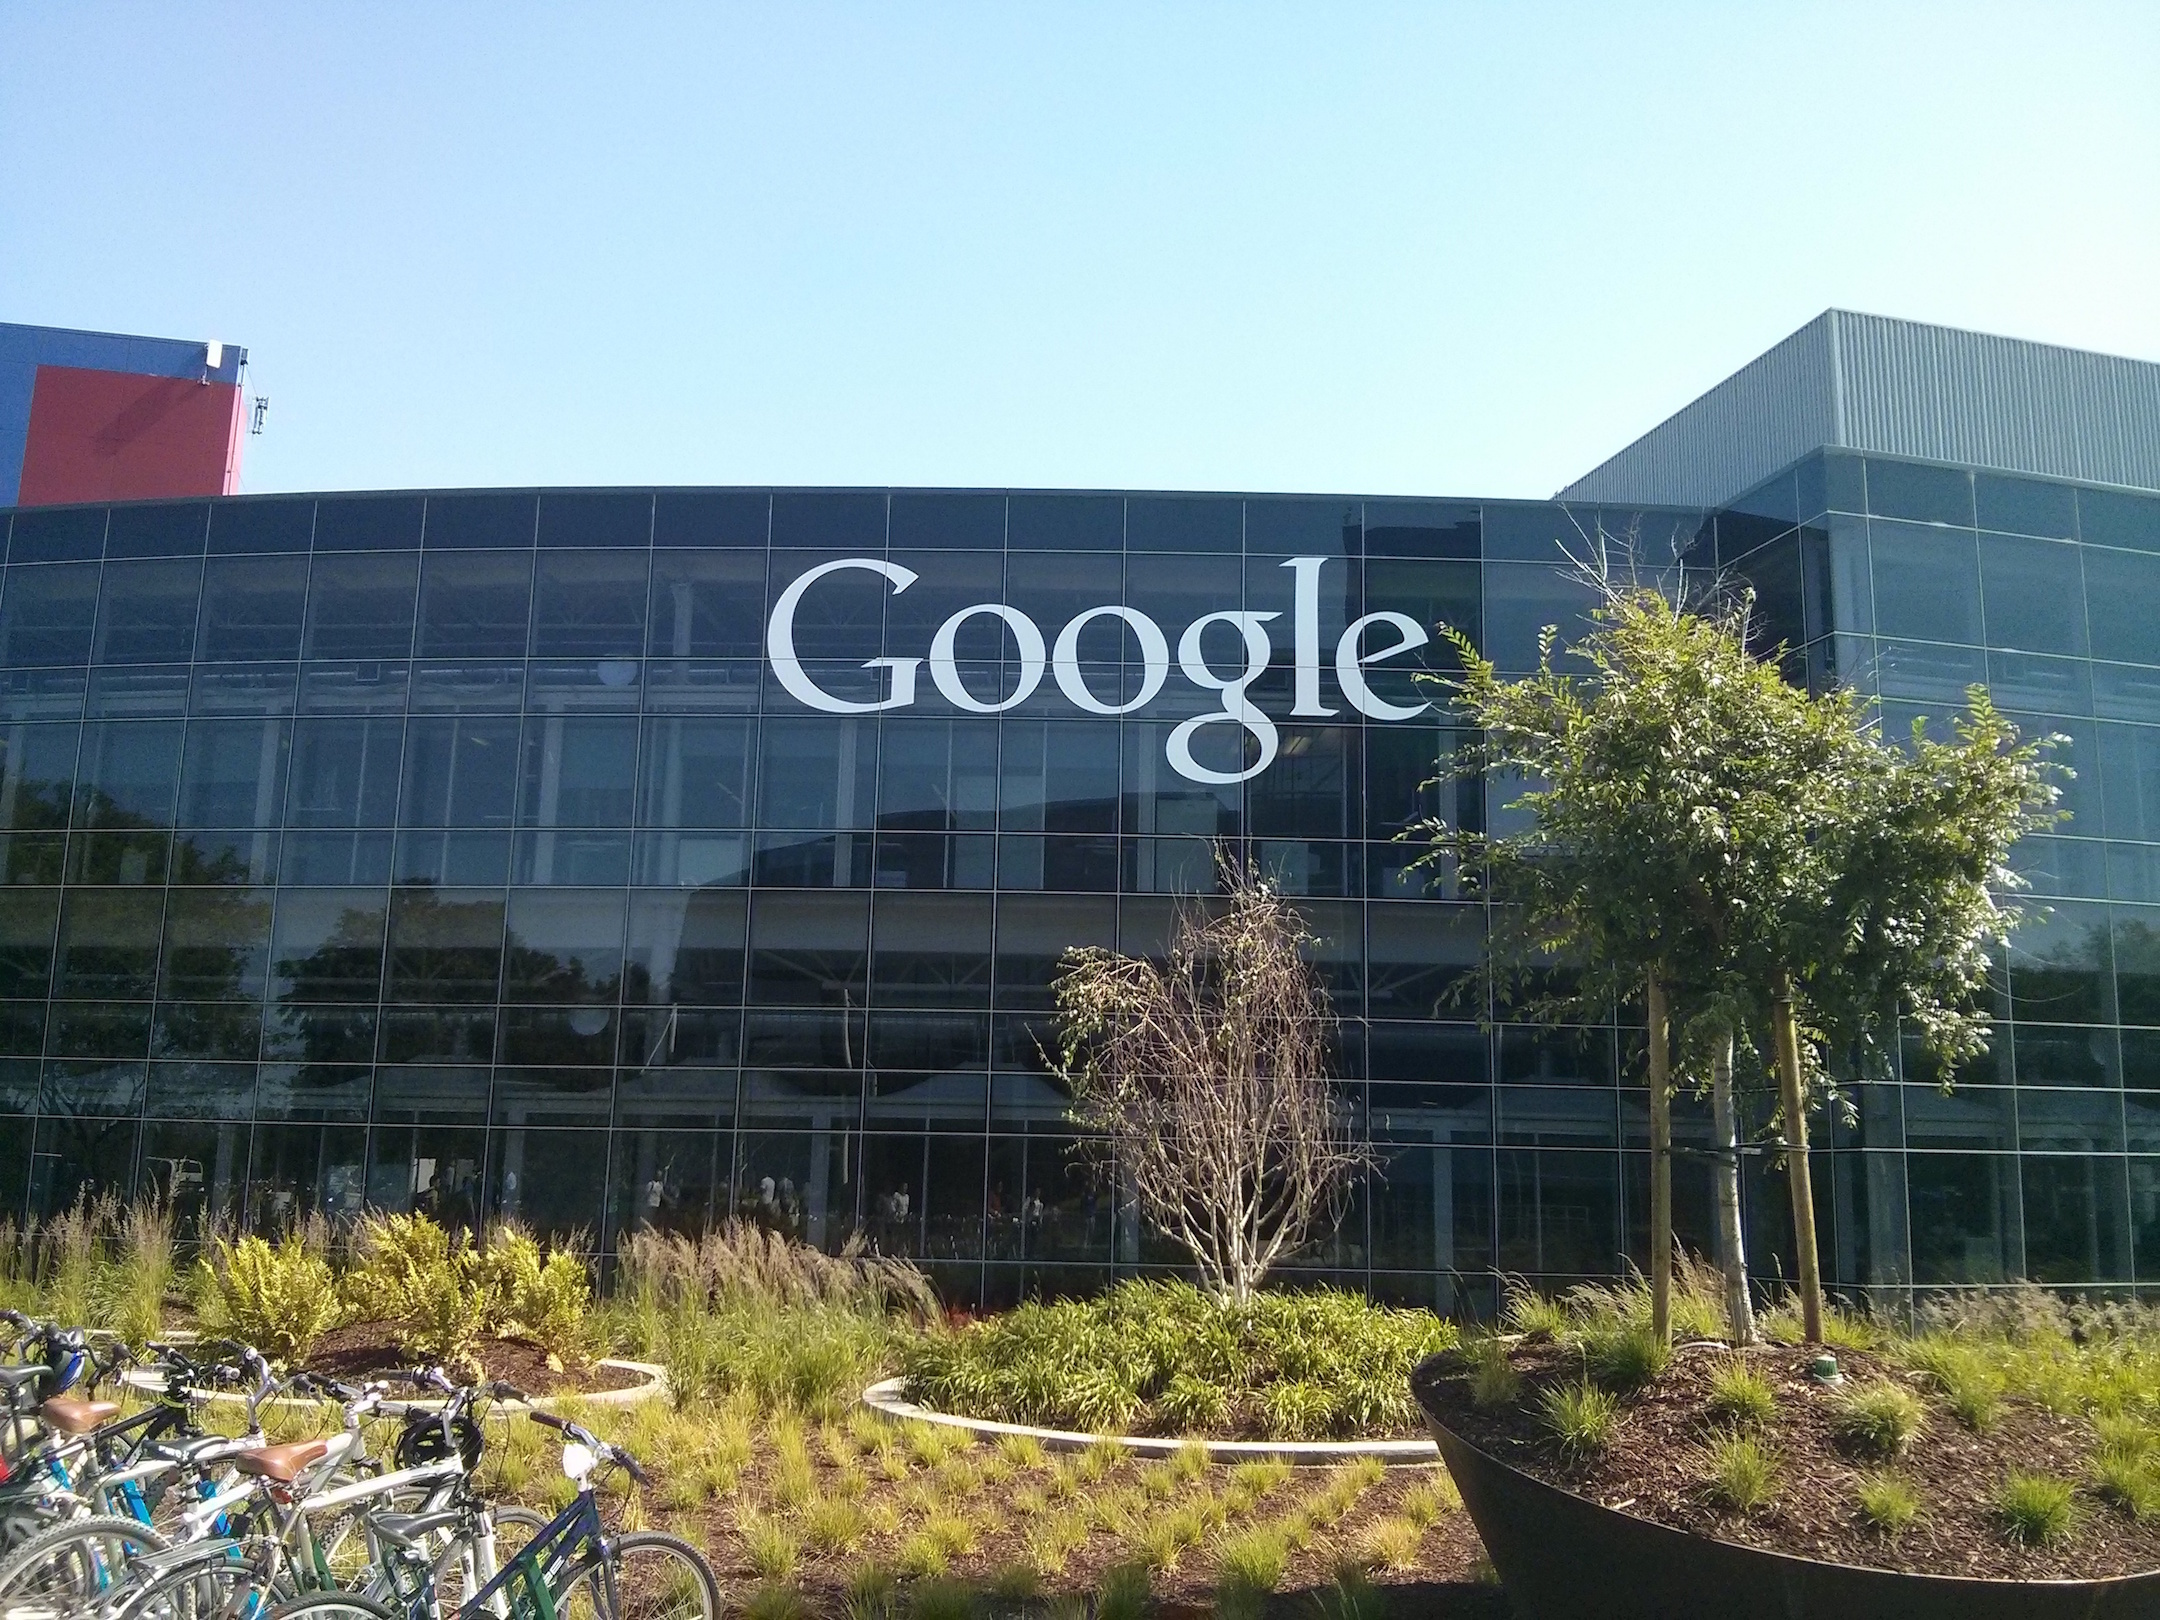 in the summer of 2014 i got to visit google headquarters in mountain view